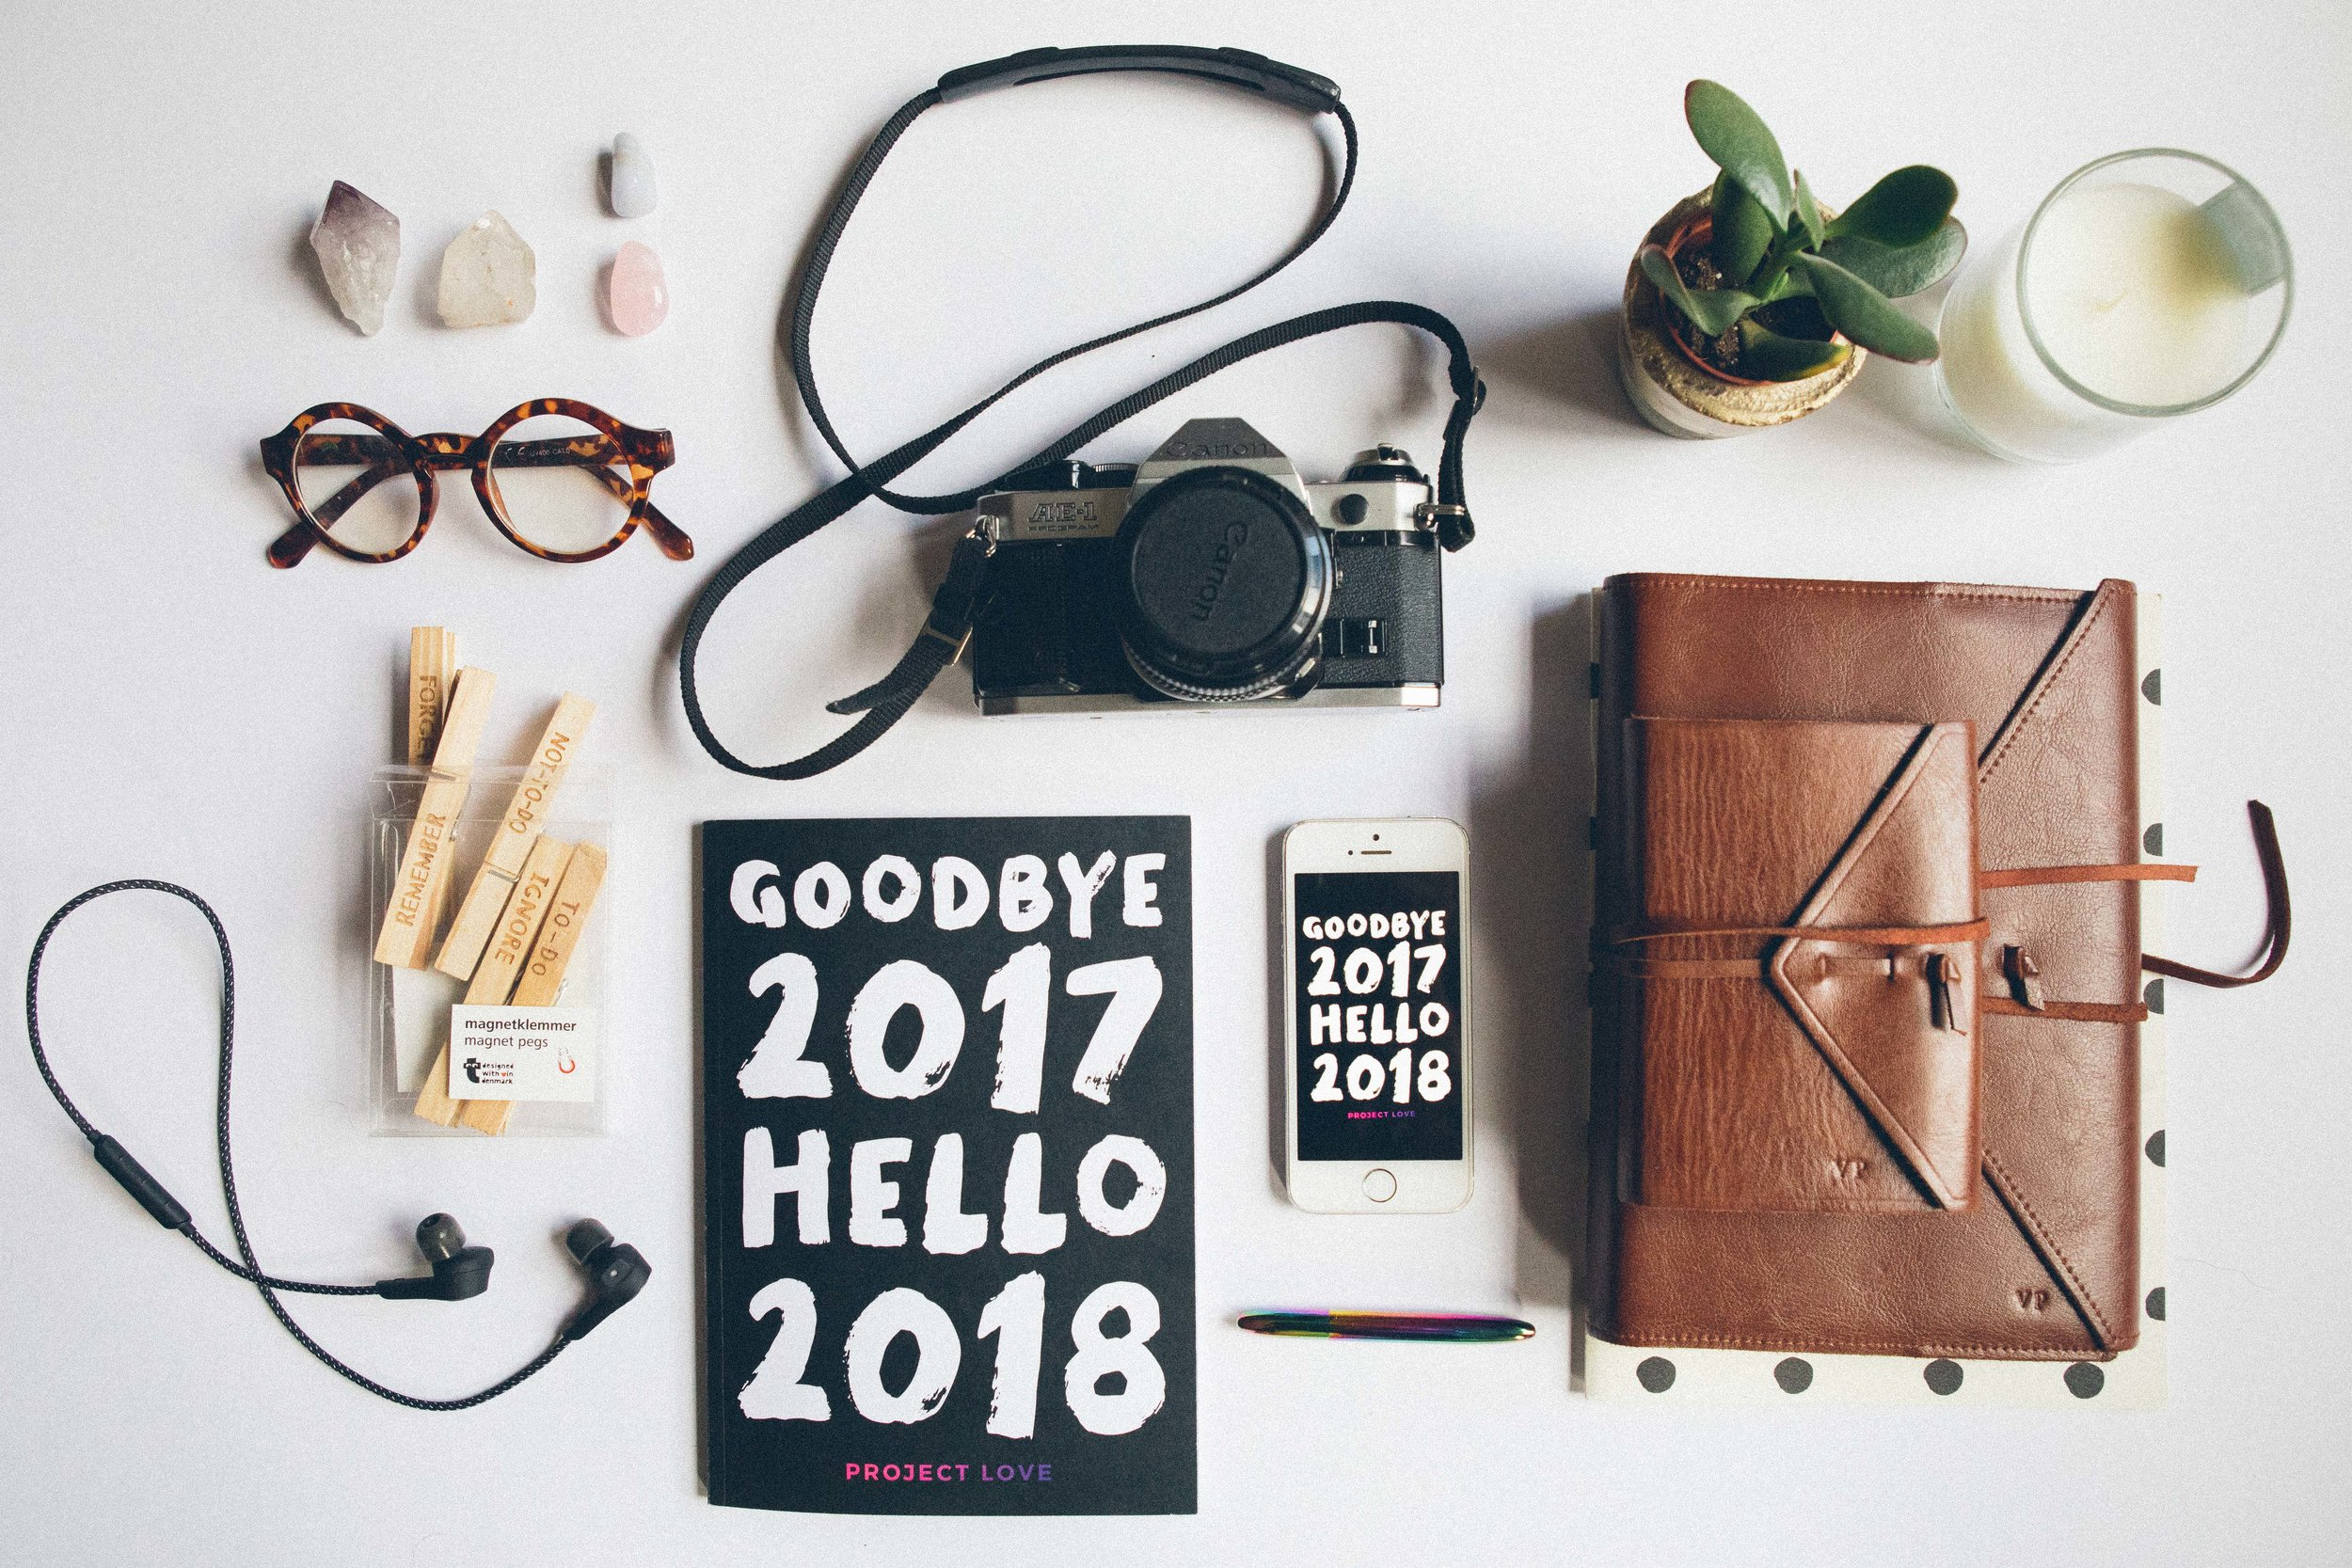 Goodbye 2017, Hello 2018 book